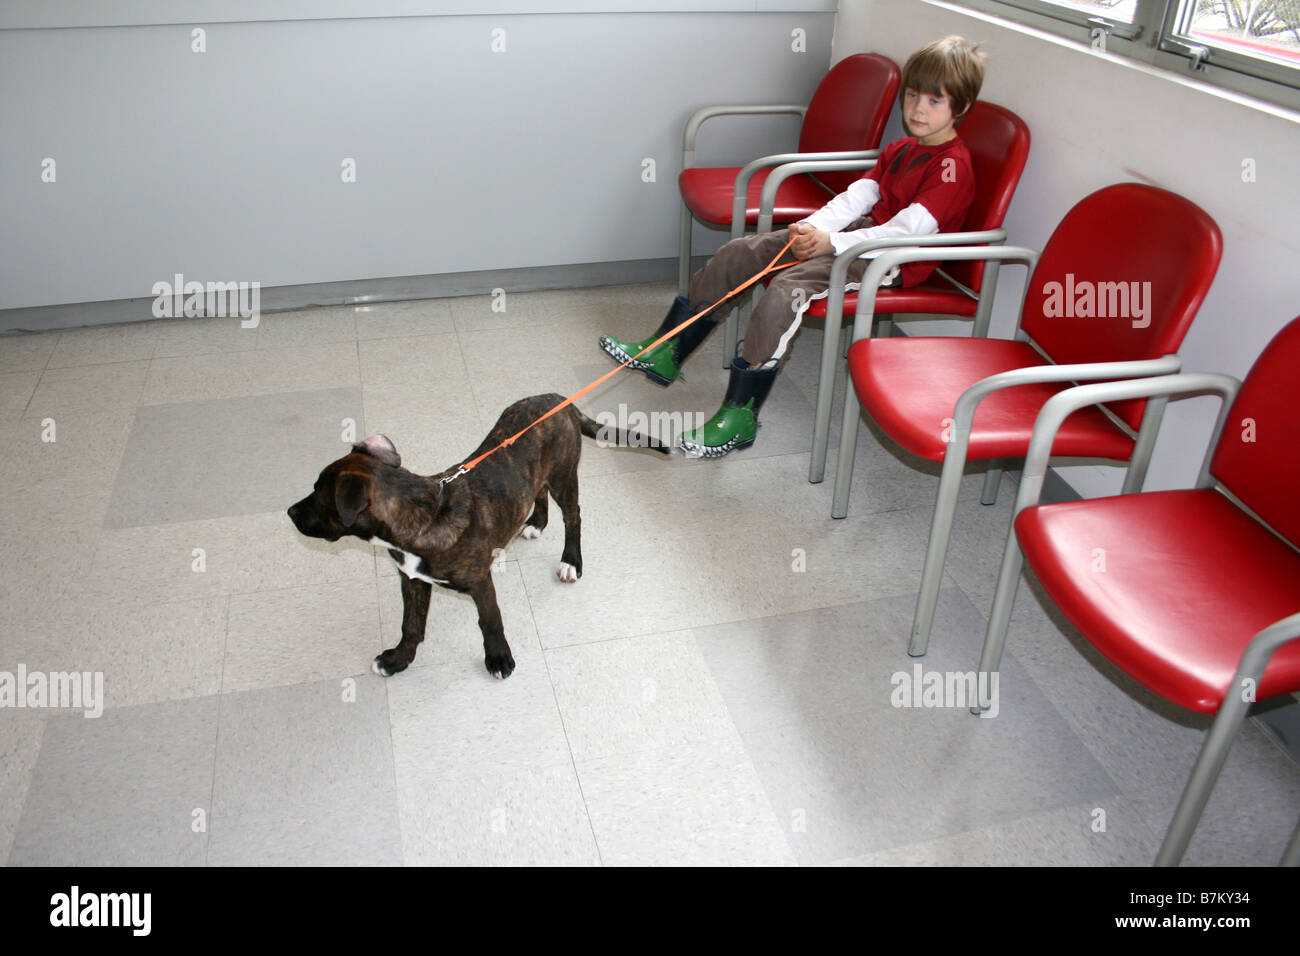 child holding puppy on leash in waiting room, veterinarian visit for vaccine - Stock Image